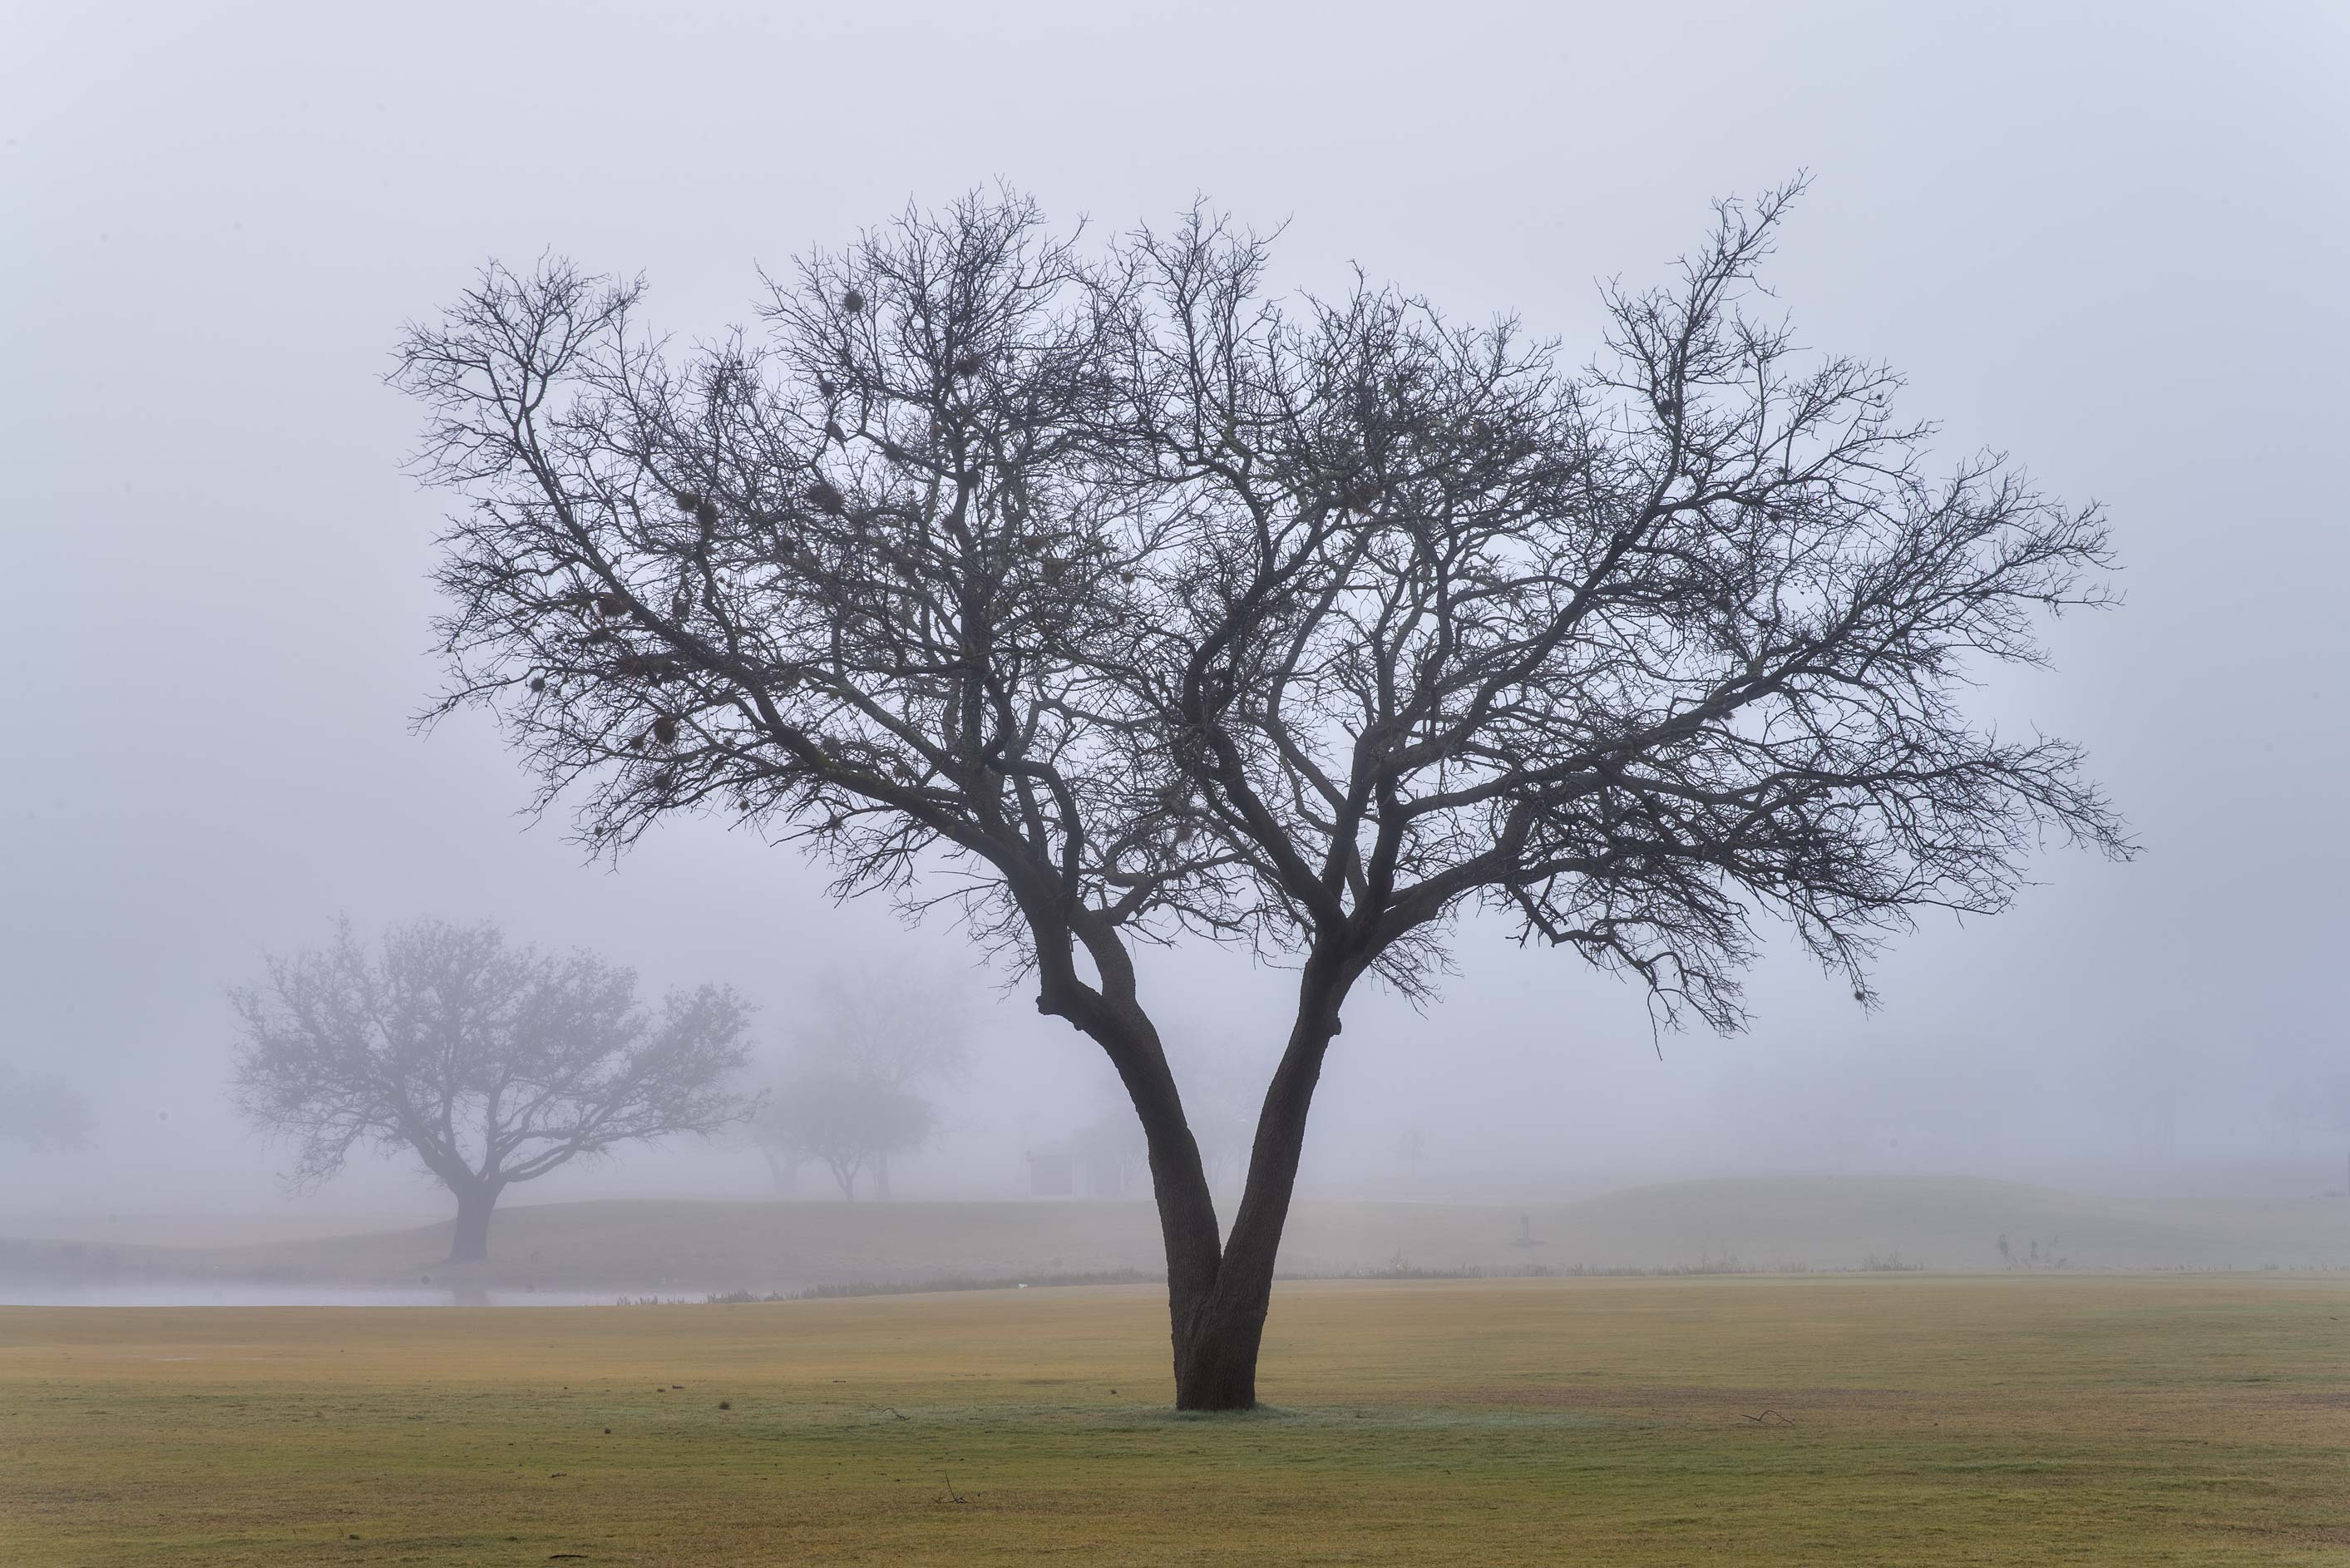 Tree silhouette in fog on Texas A&M Campus golf course. College Station, Texas